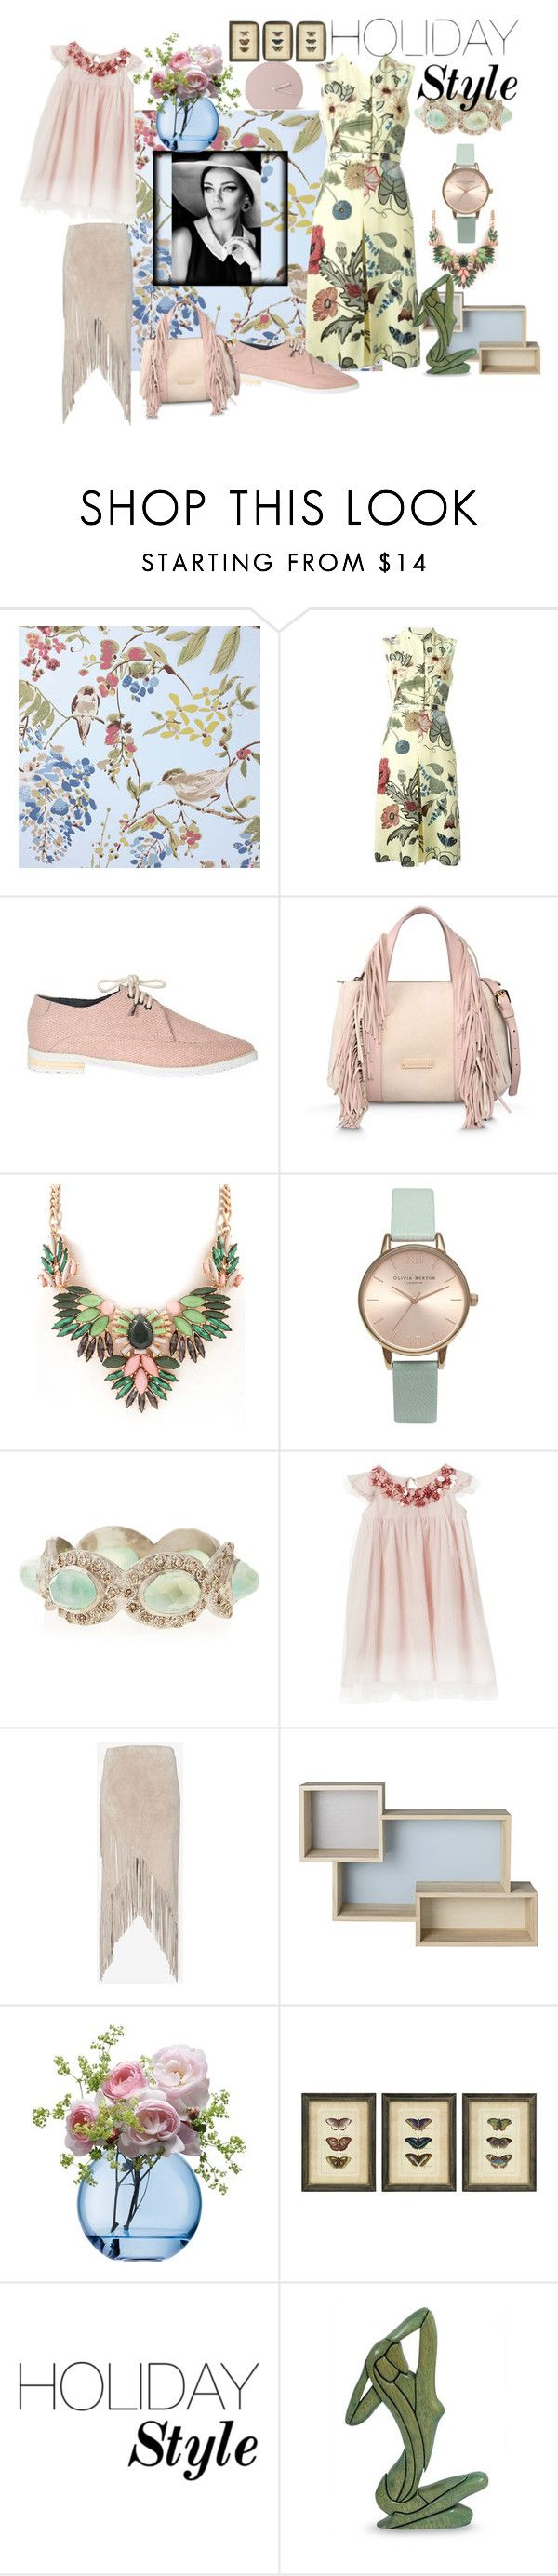 """Holiday"" by spainspecial ❤ liked on Polyvore featuring Nina Campbell, Gucci, TIBI, Alberta Ferretti, Olivia Burton, Armenta, Exclusive for Intermix, Bloomingville, LSA International and NOVICA"